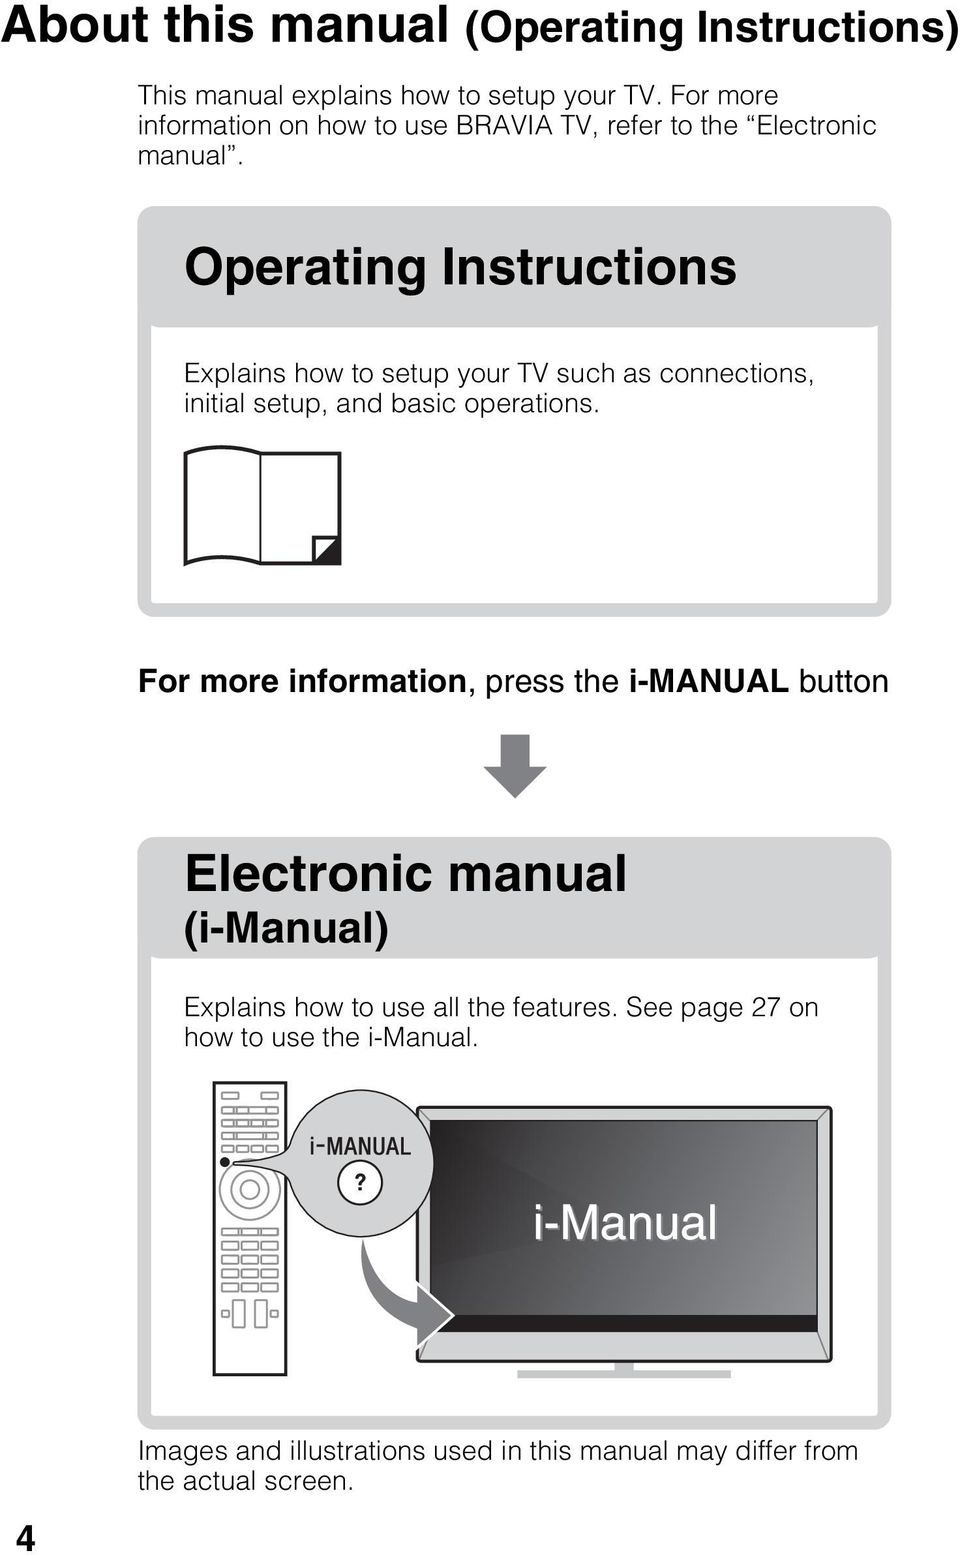 Operating Instructions Explains how to setup your TV such as connections, initial setup, and basic operations.